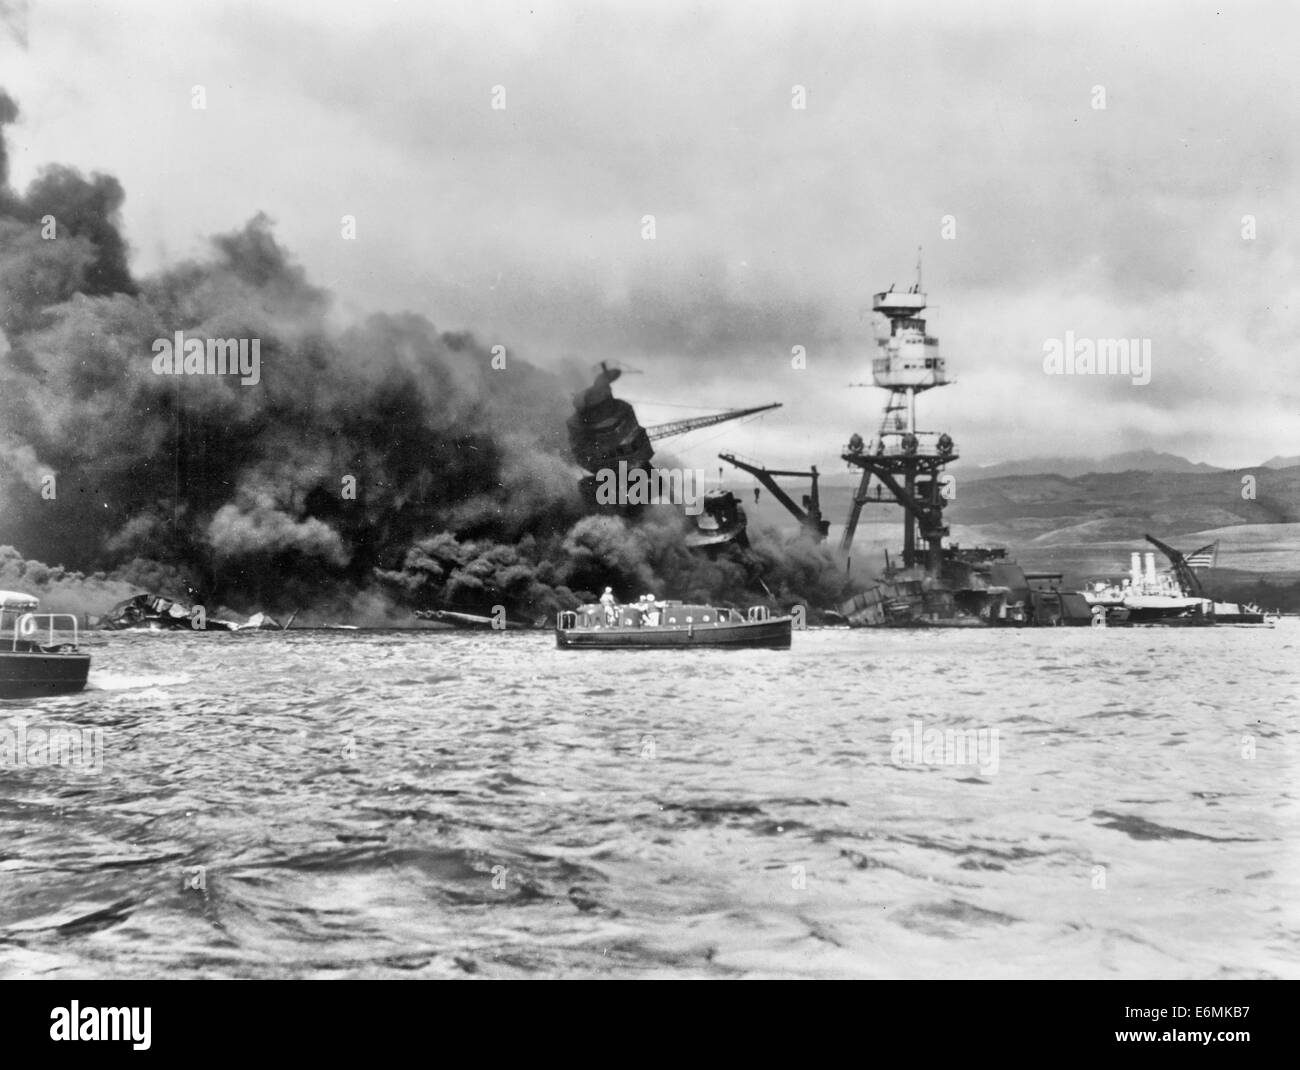 USS Arizona, at height of fire, following Japanese aerial attack on Pearl Harbor, Hawaii, December 7, 1941 Stock Photo